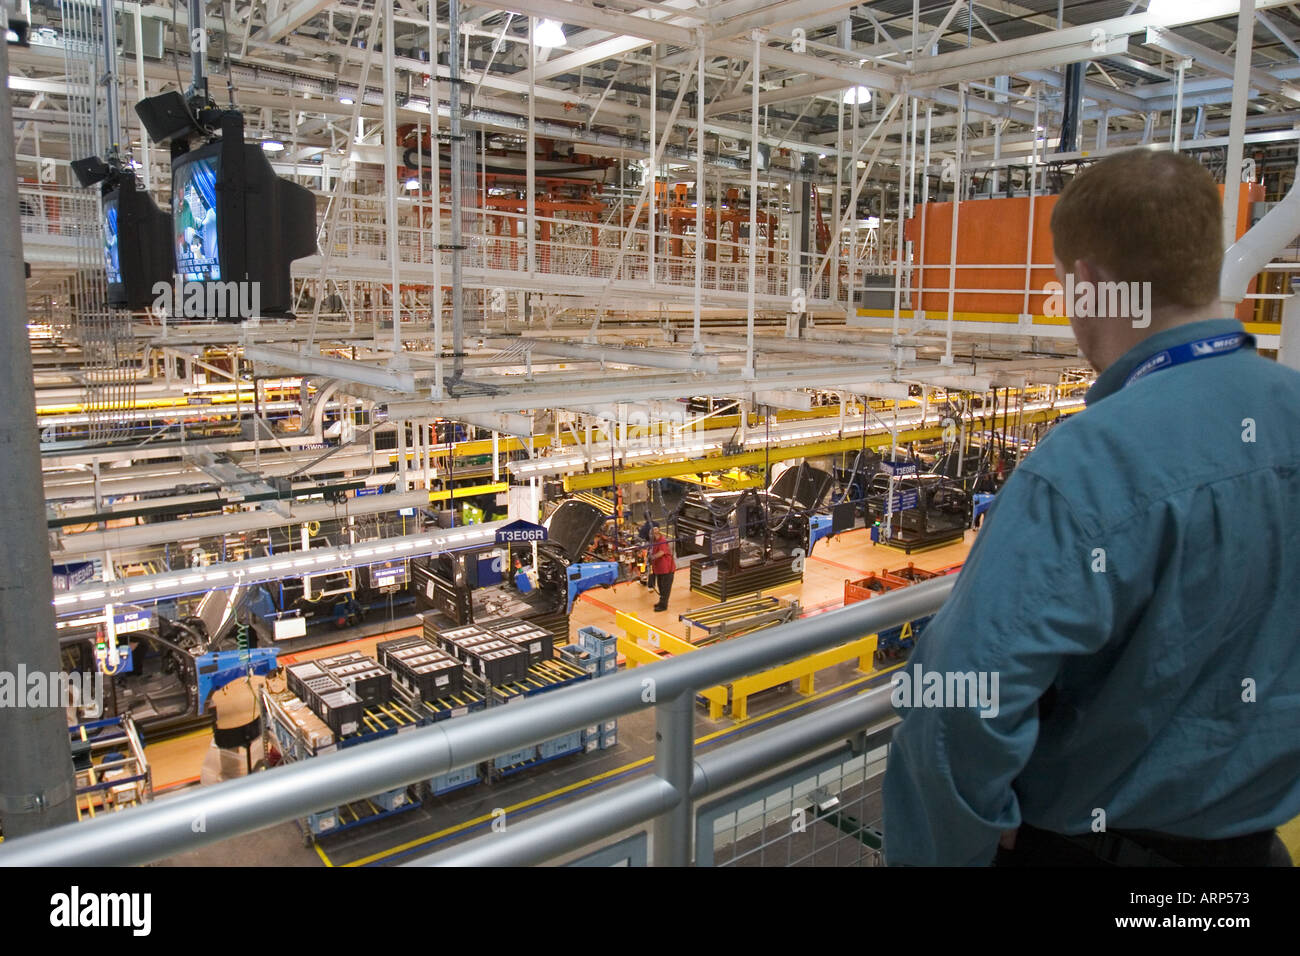 Ford motor company dearborn truck plant stock photo for Ford motor company jobs dearborn mi